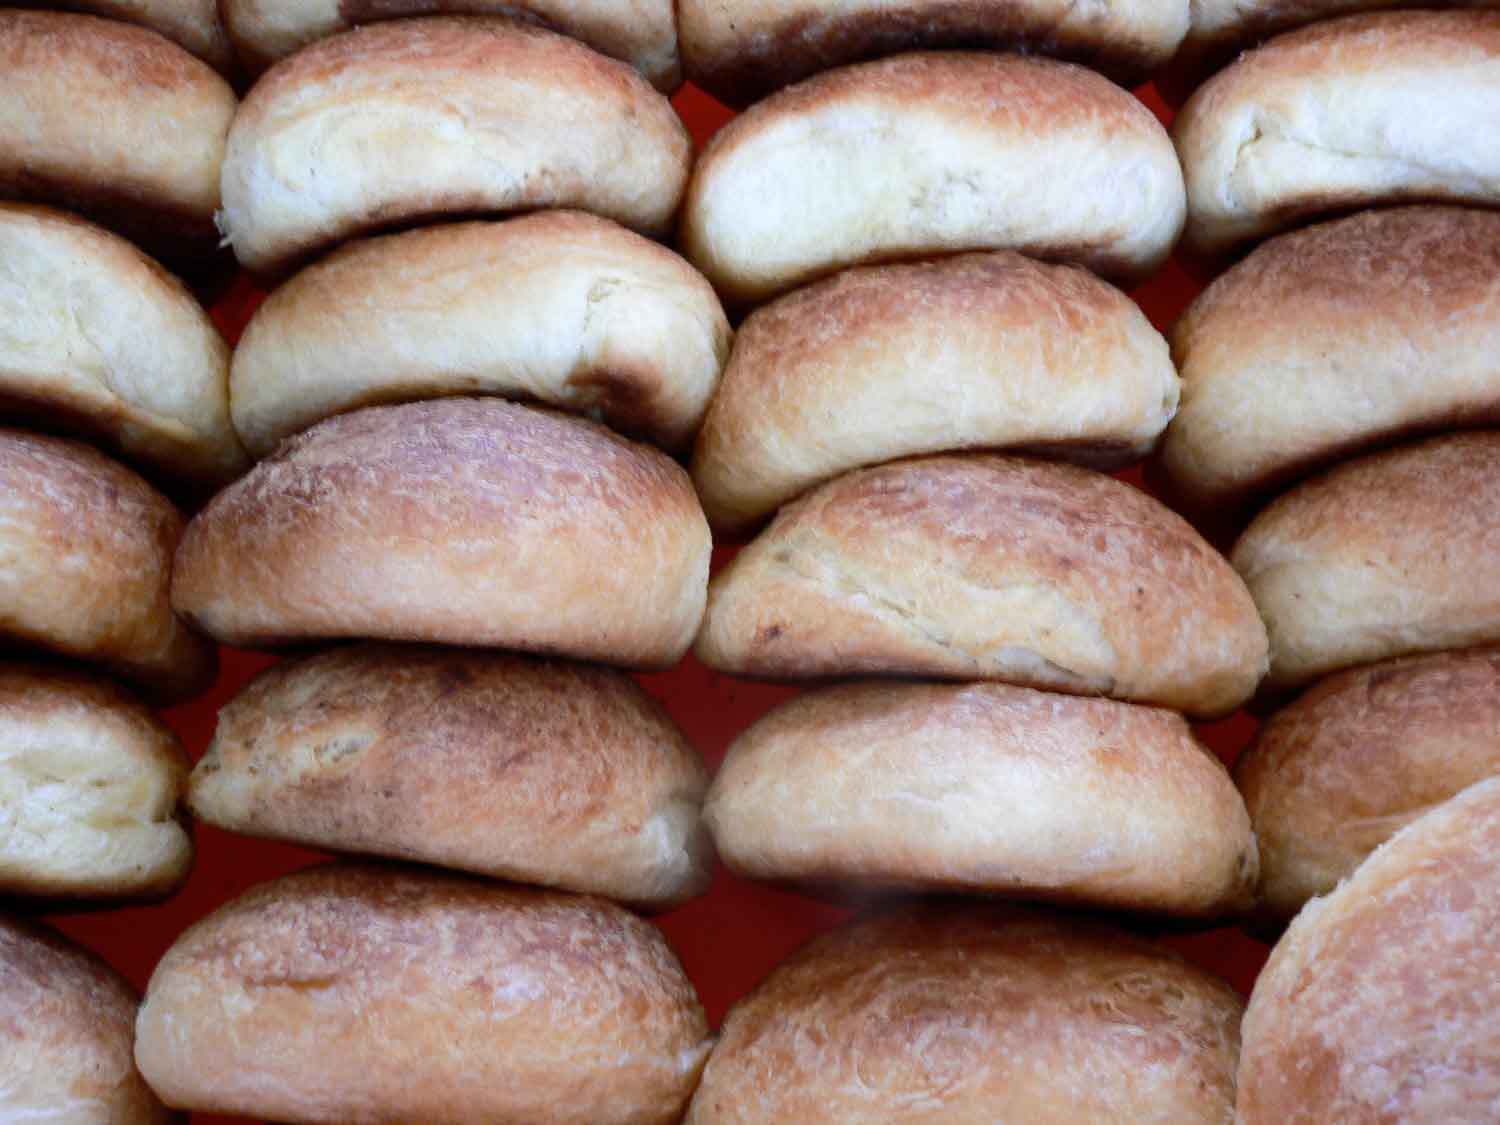 Panama food: Hojaldra is a fried bread recipe from Panama that is so easy to make and common to find in Panama.